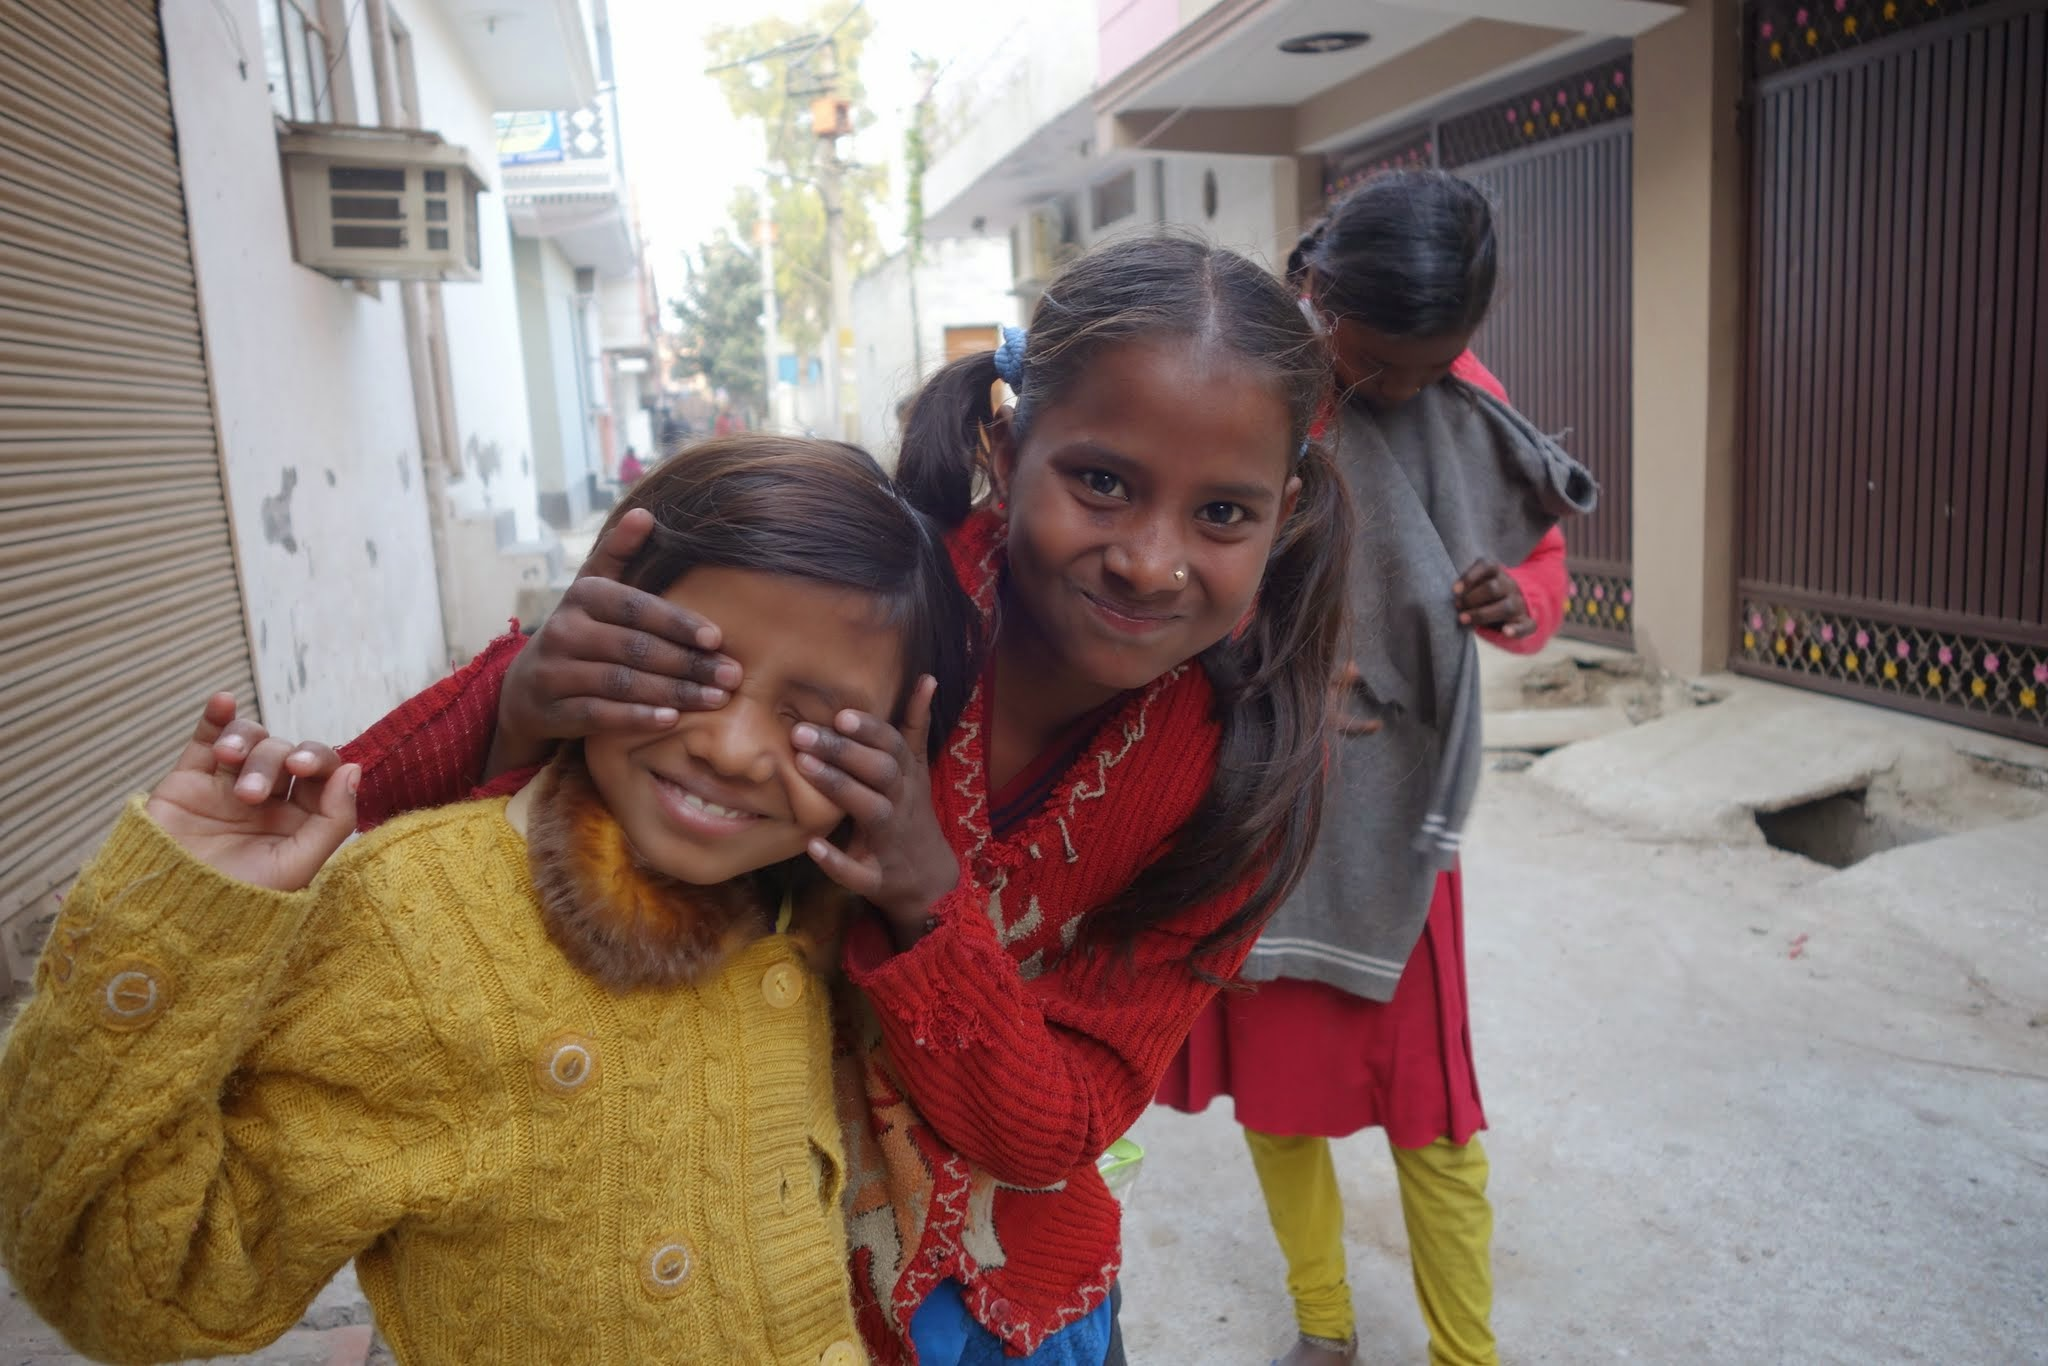 Around 30% of the world's poor live in India.